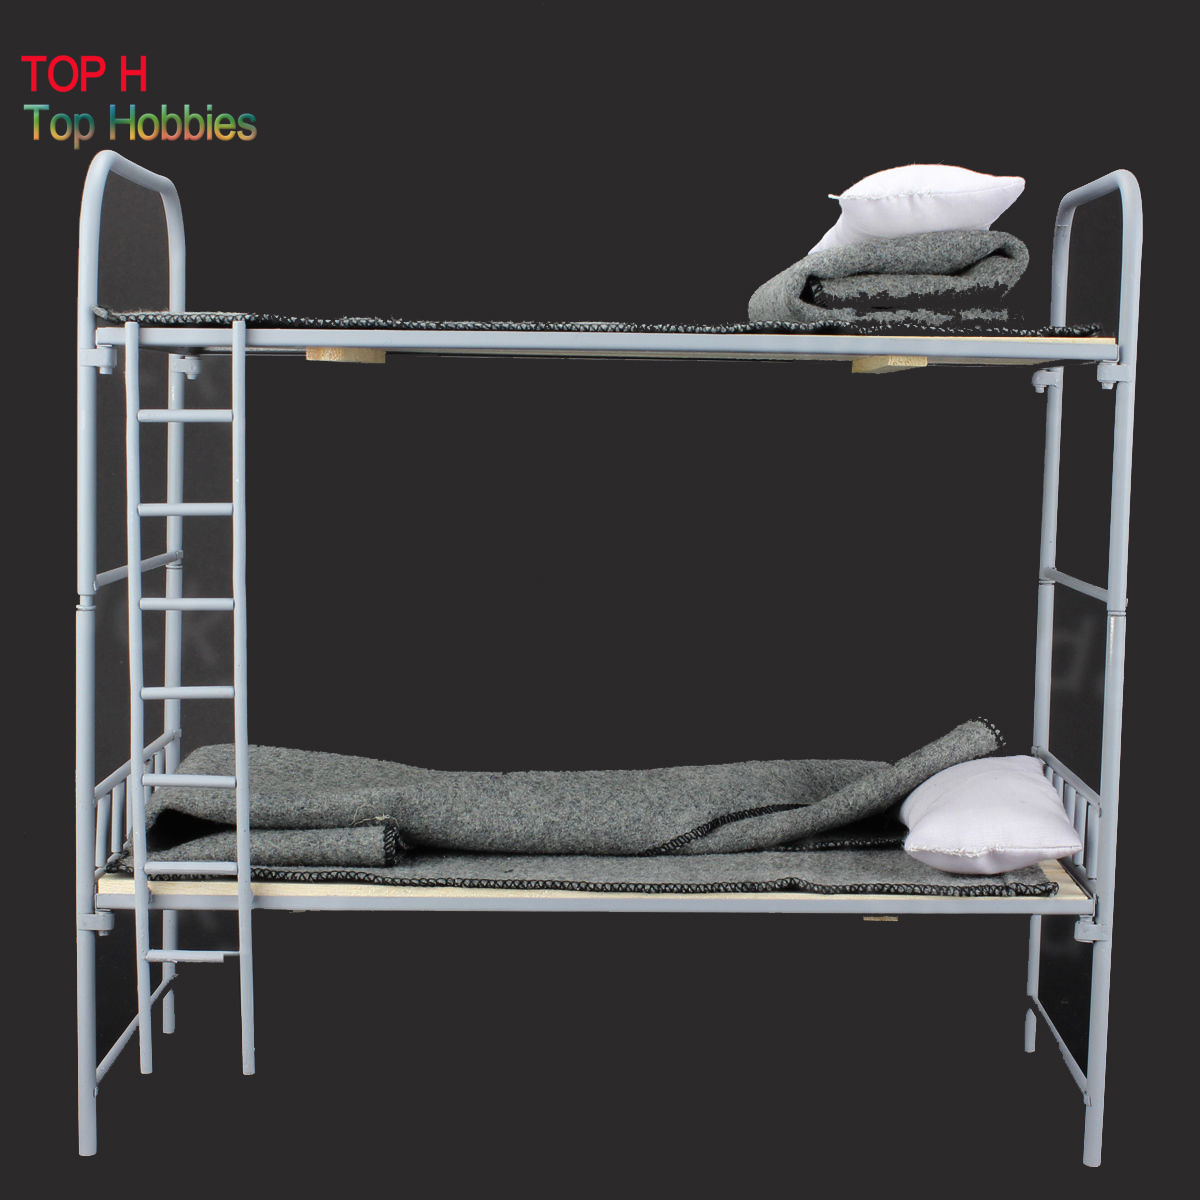 Toy Model WWII German 1/6 Scale Metal & Wooden Bunk Bed Set For 12 Figure 1 6 scale military accessories toy model wwii german metal